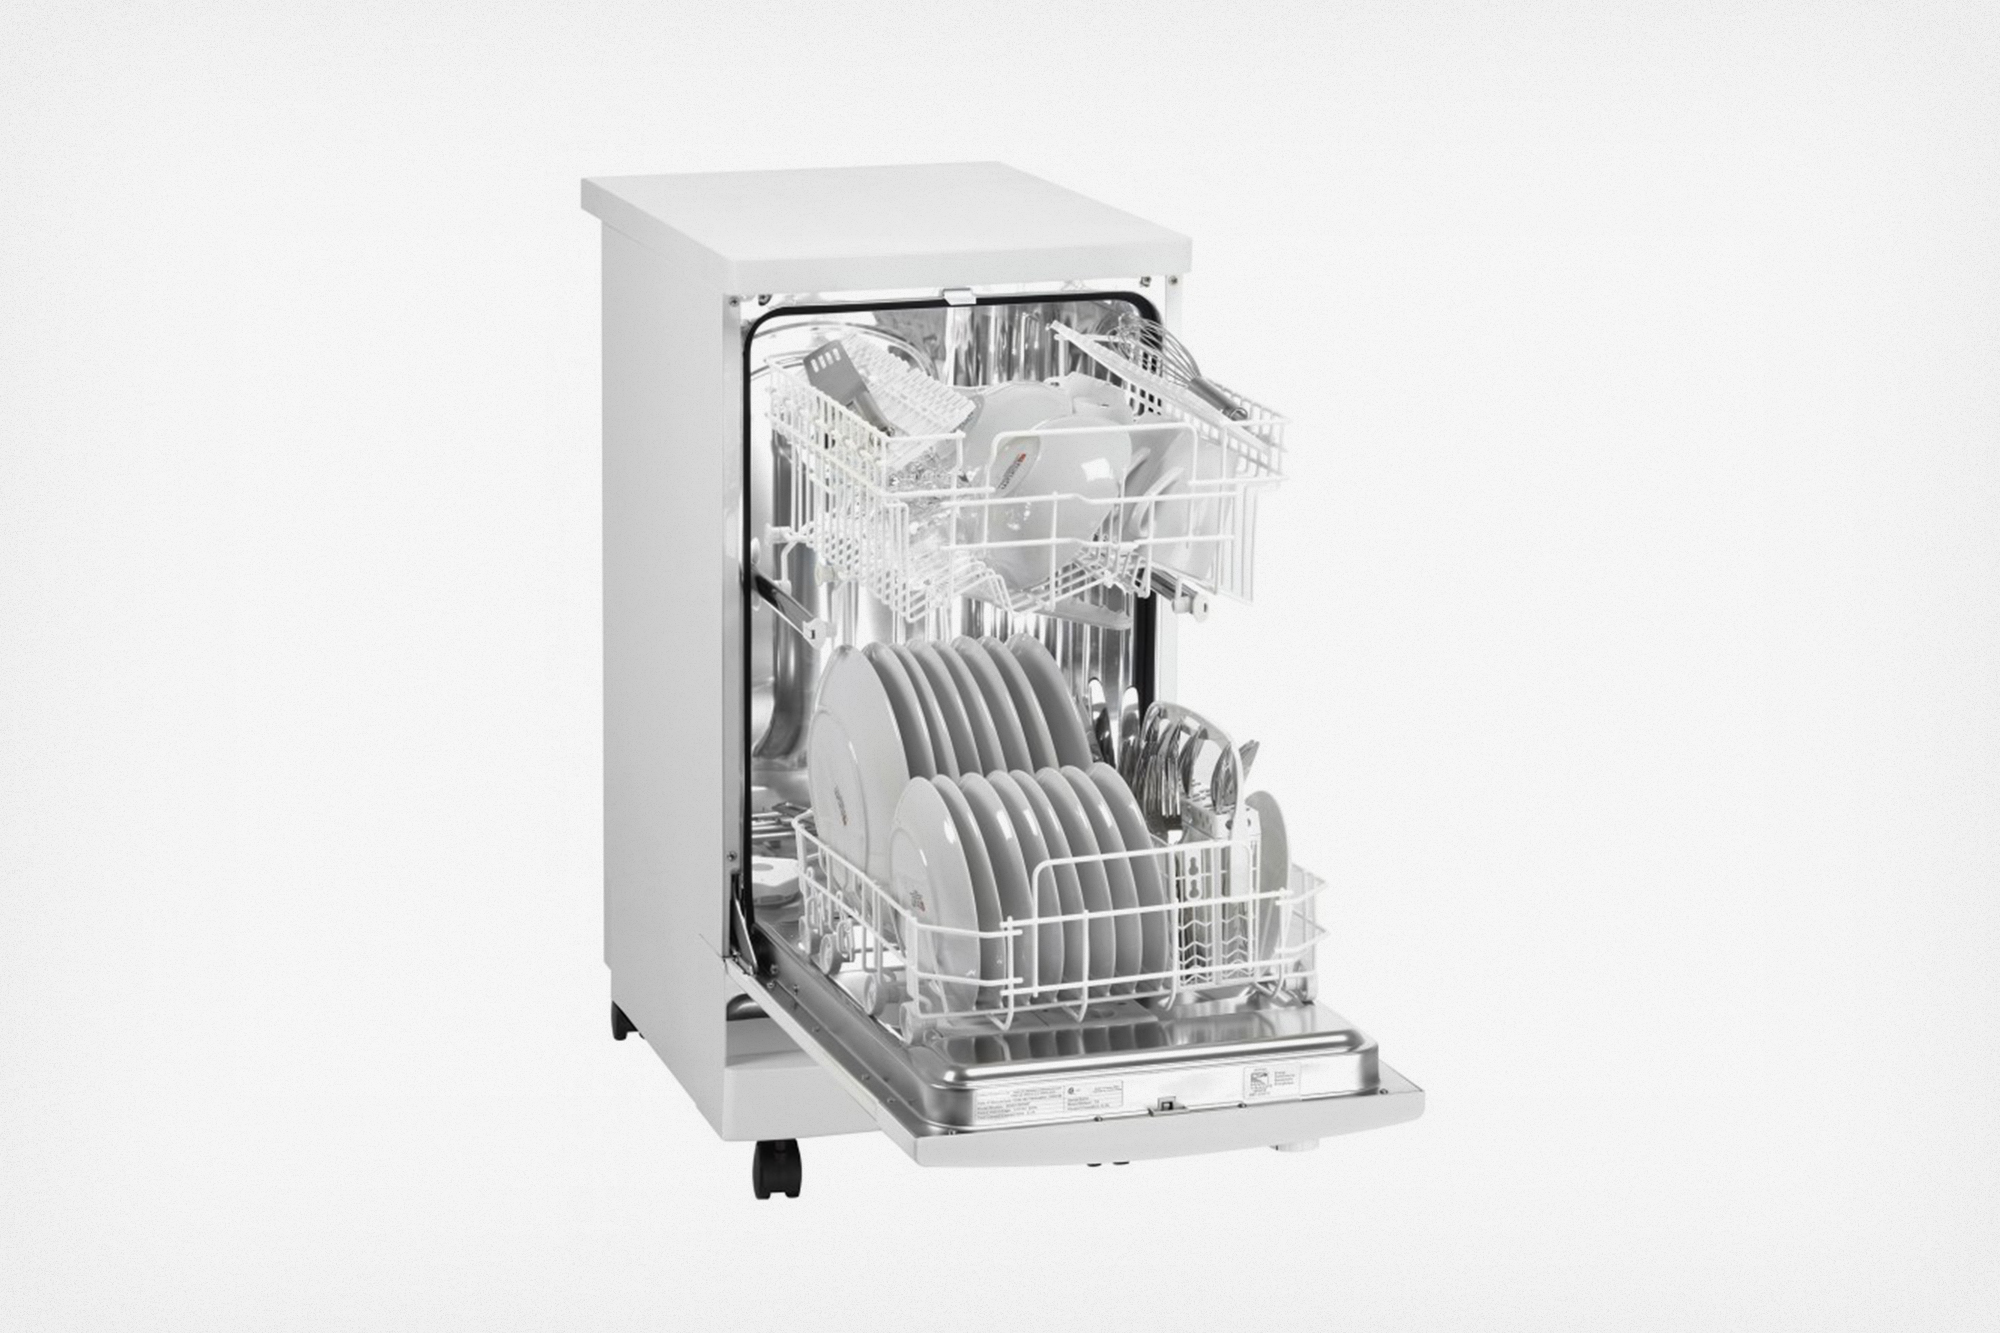 The best portable dishwasher